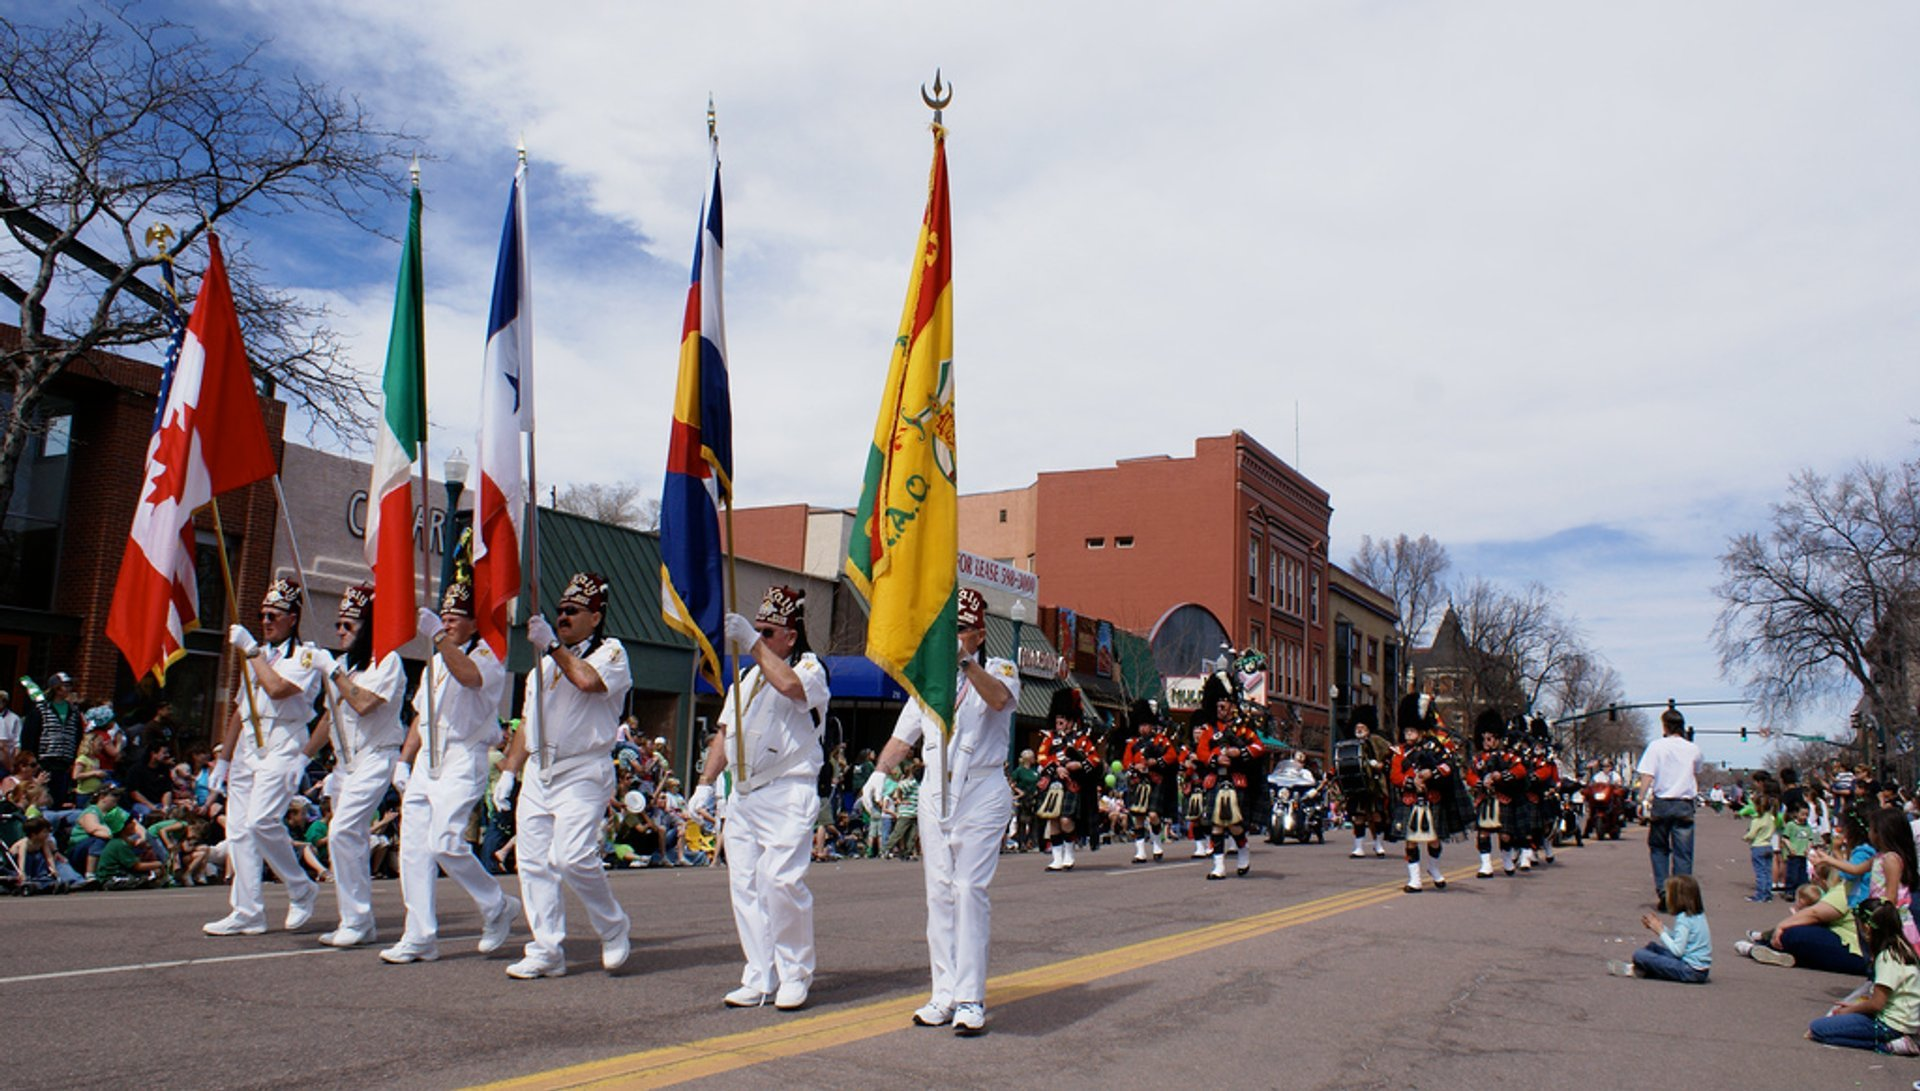 Colorado Springs St. Patrick's Day Parade in Colorado 2020 - Best Time